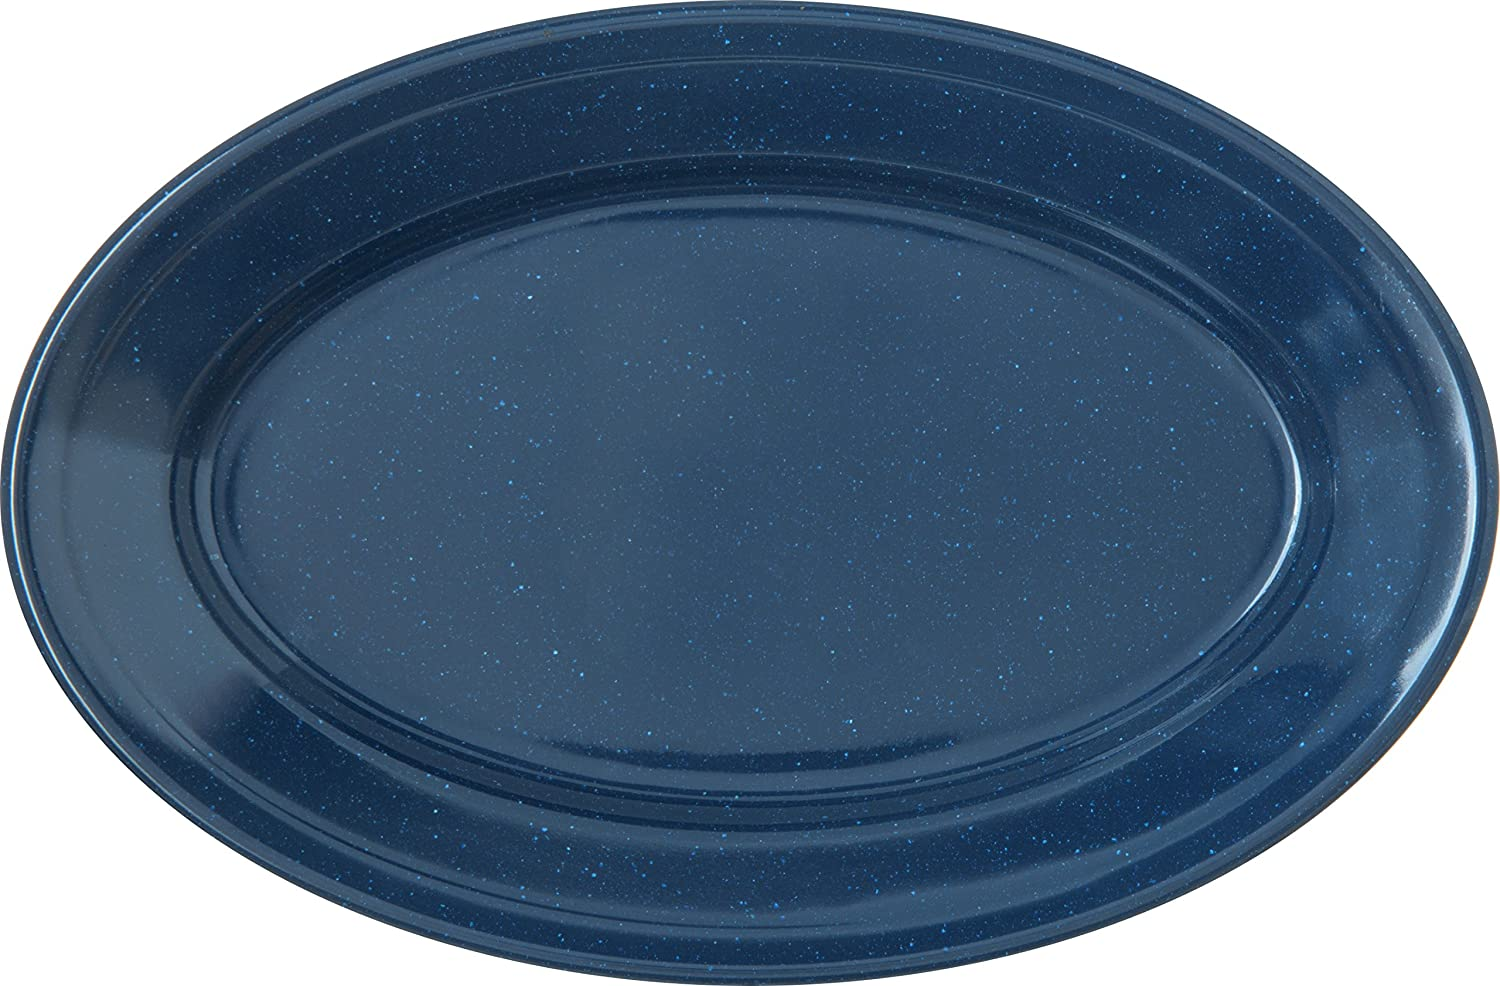 Amazon Com Carlisle 4356335 Dallas Ware Melamine Oval Platter Tray 9 25 X 6 25 Café Blue Pack Of 24 Industrial Scientific